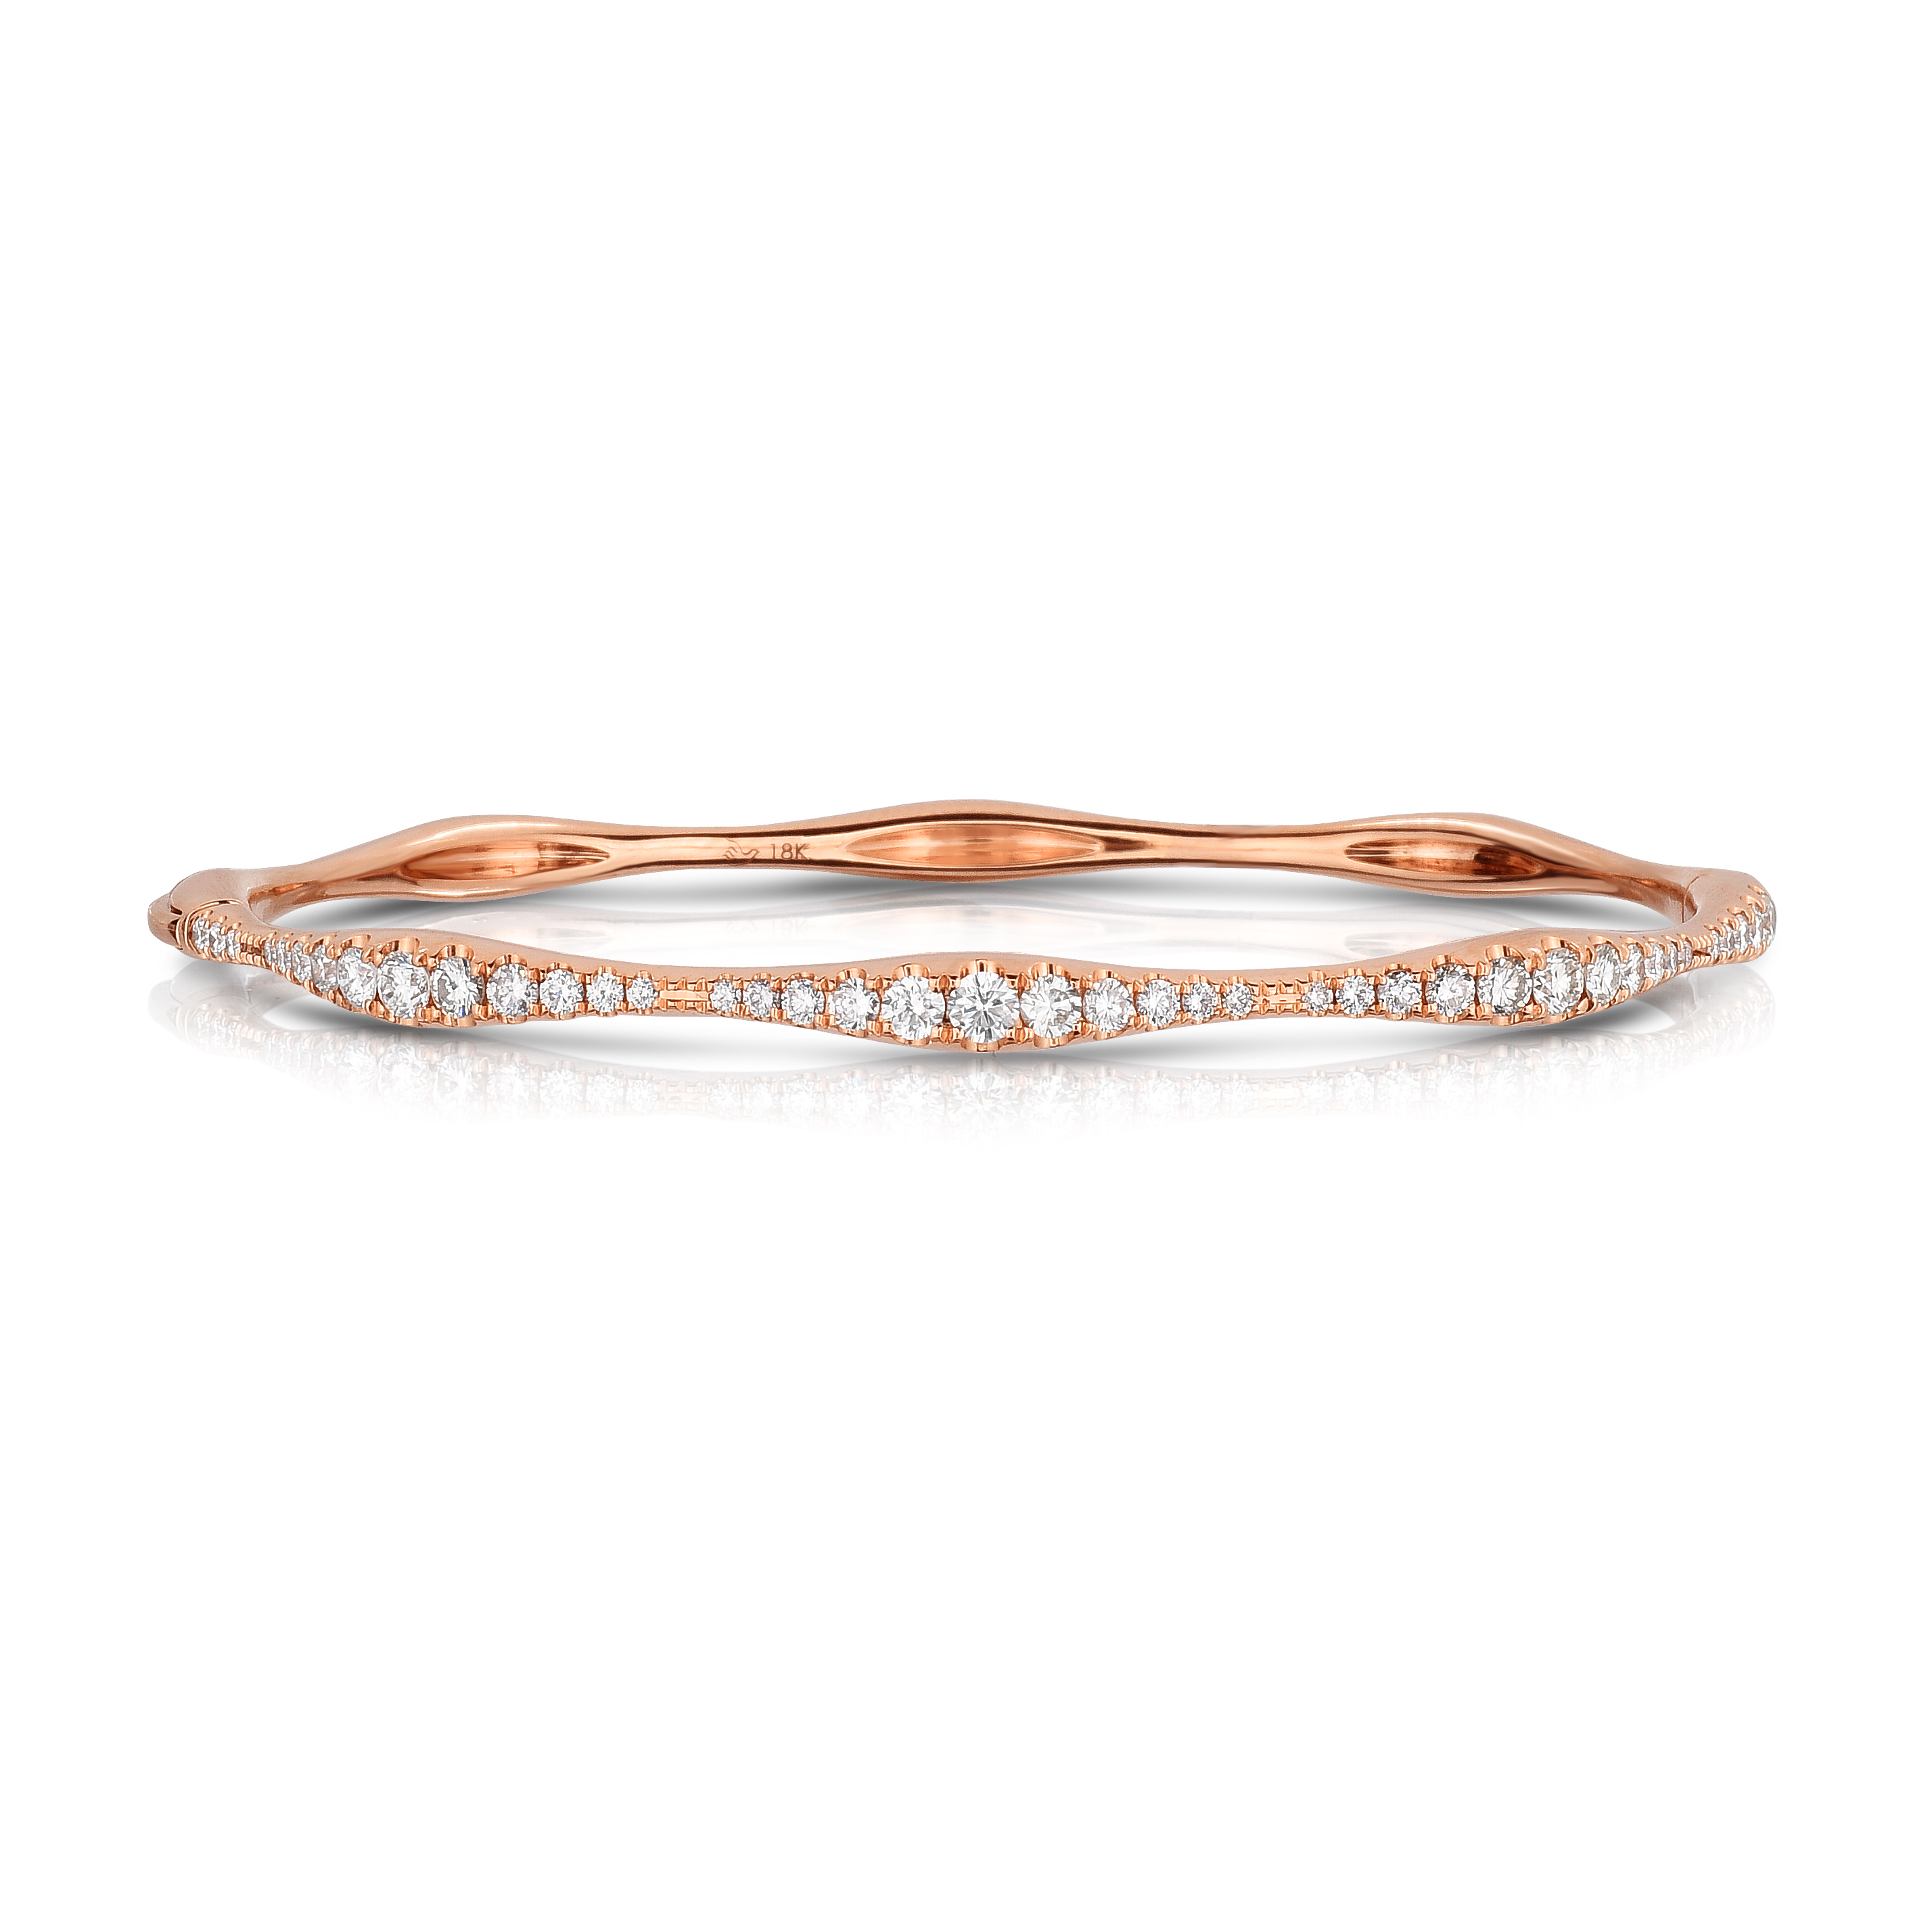 Diamond bracelet, Diamond bangle, Gold bracelet, Yellow gold bracelet, Rose gold bracelet, White gold bracelet, White gold bangle, Rose gold bangle, Yellow gold bangle, Fashion bracelet, Fashion bangle